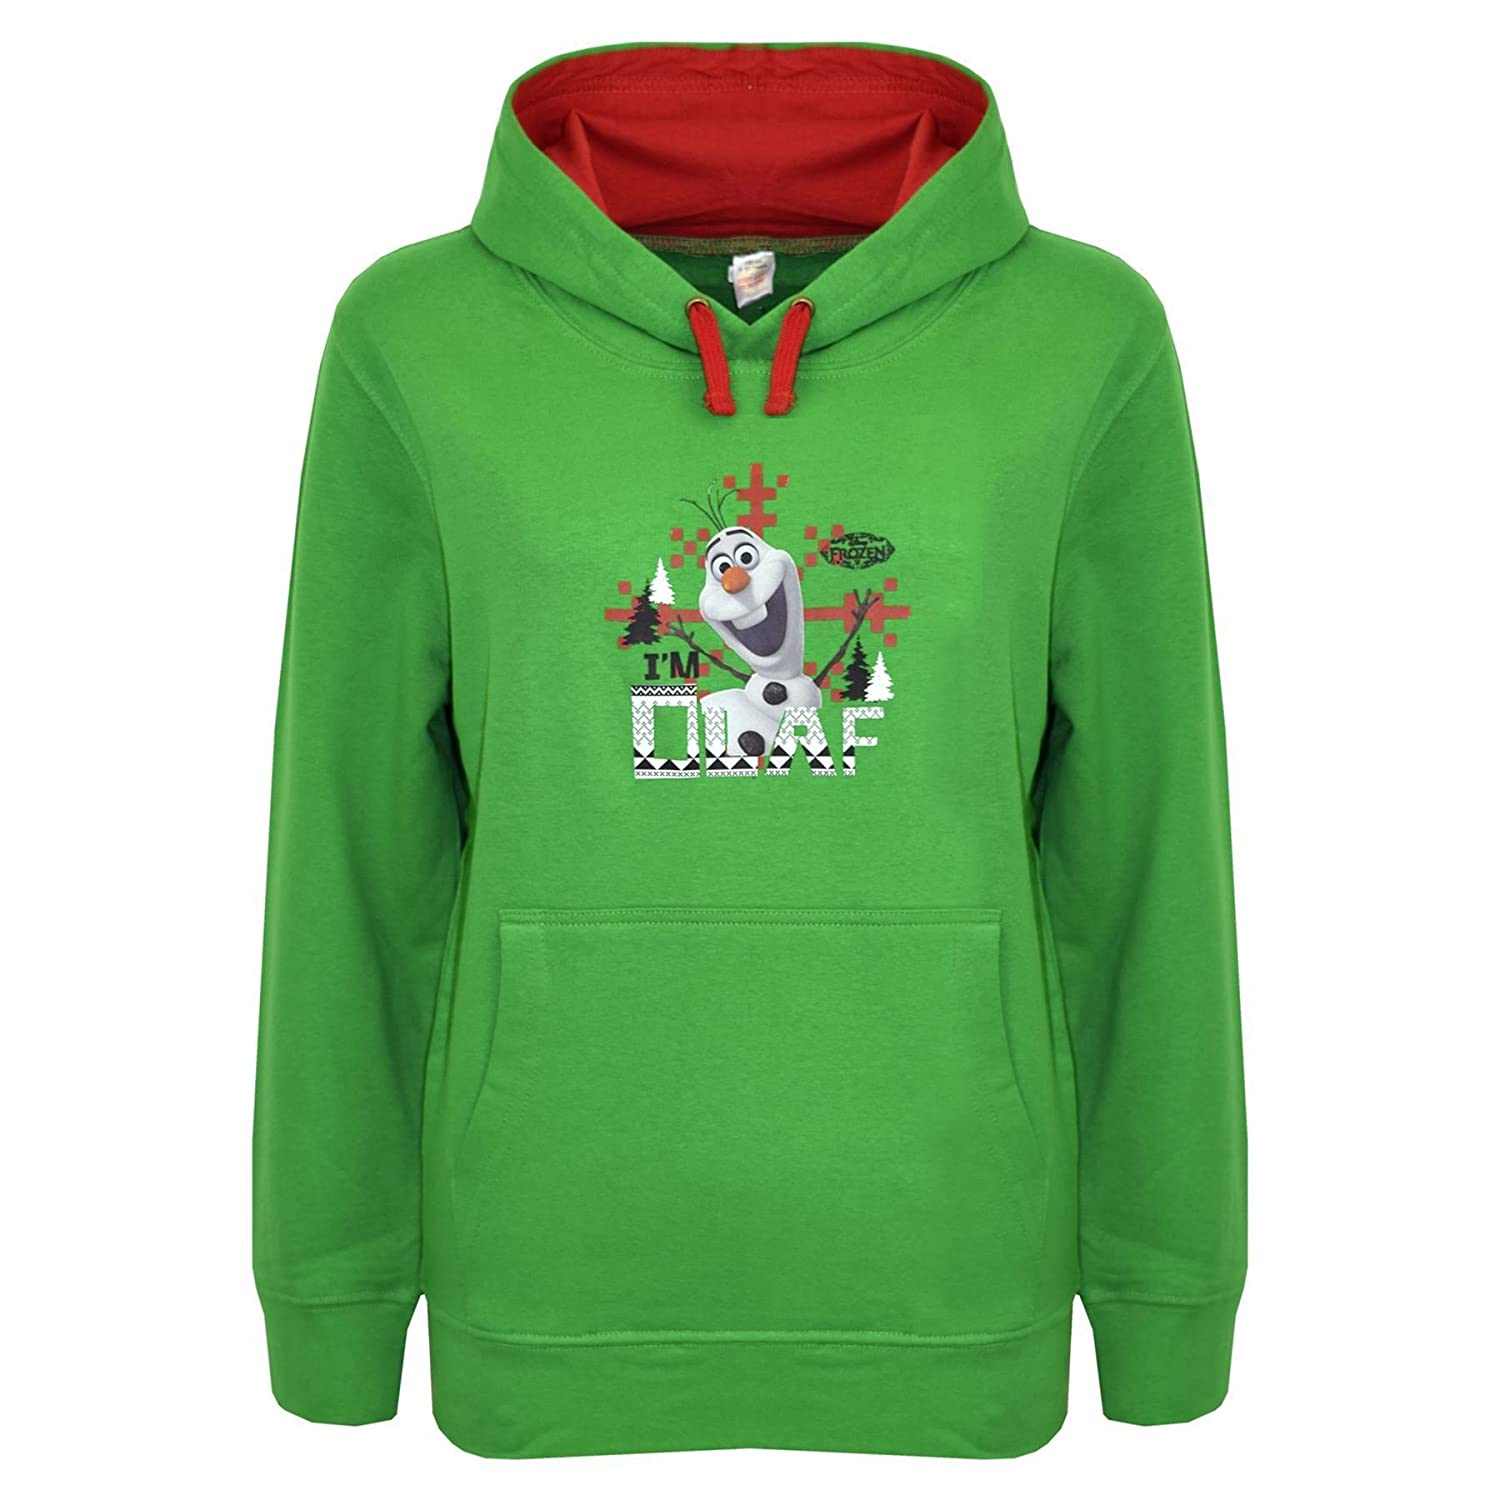 Kids Girls Boys Rocket Hooded Sweatshirt Hoodie Jumper Winter Warm Pullover Tops